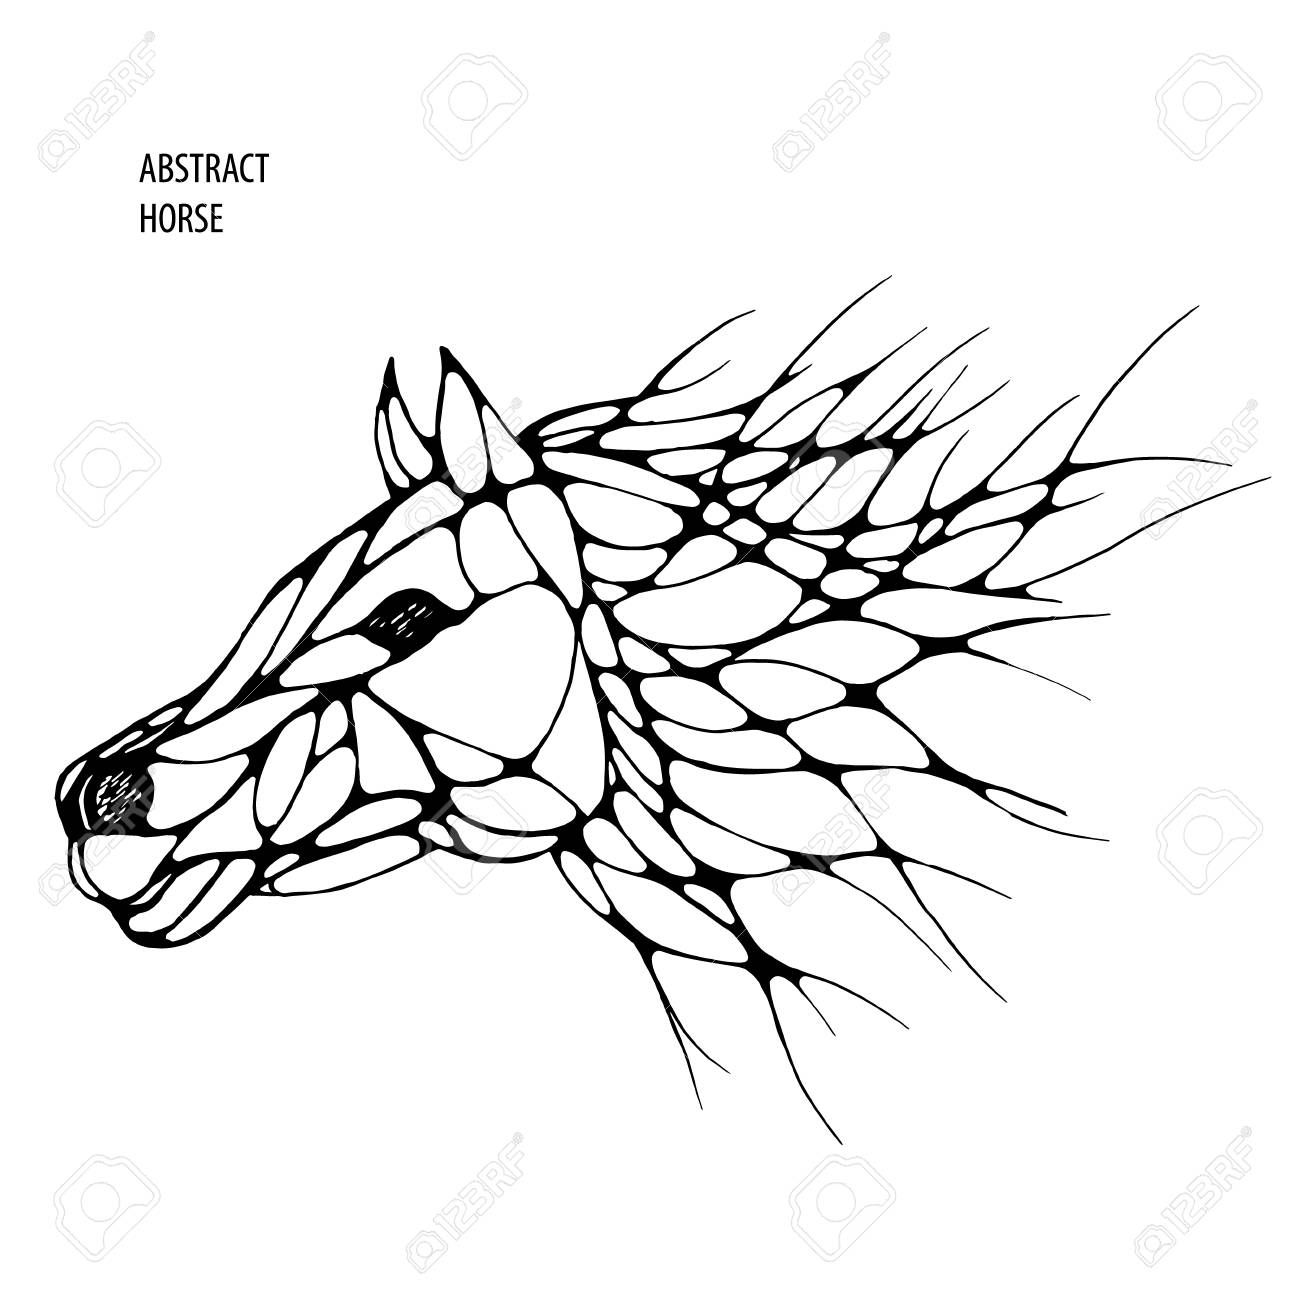 Abstract Art Horse Drawings